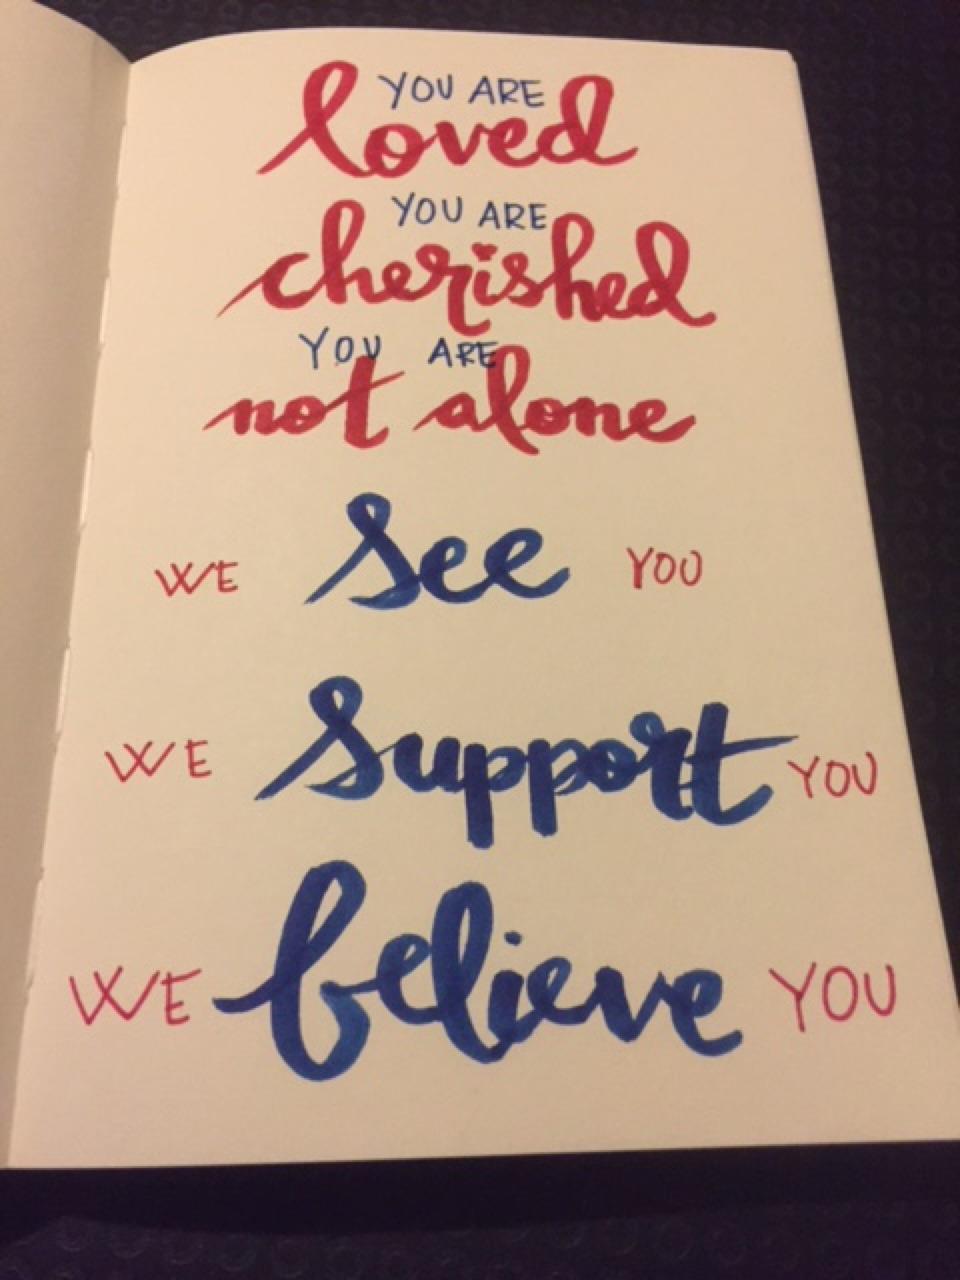 you are loved  you are cherished  you are not alone  we see you  we support you  we believe you     #survivorloveletter